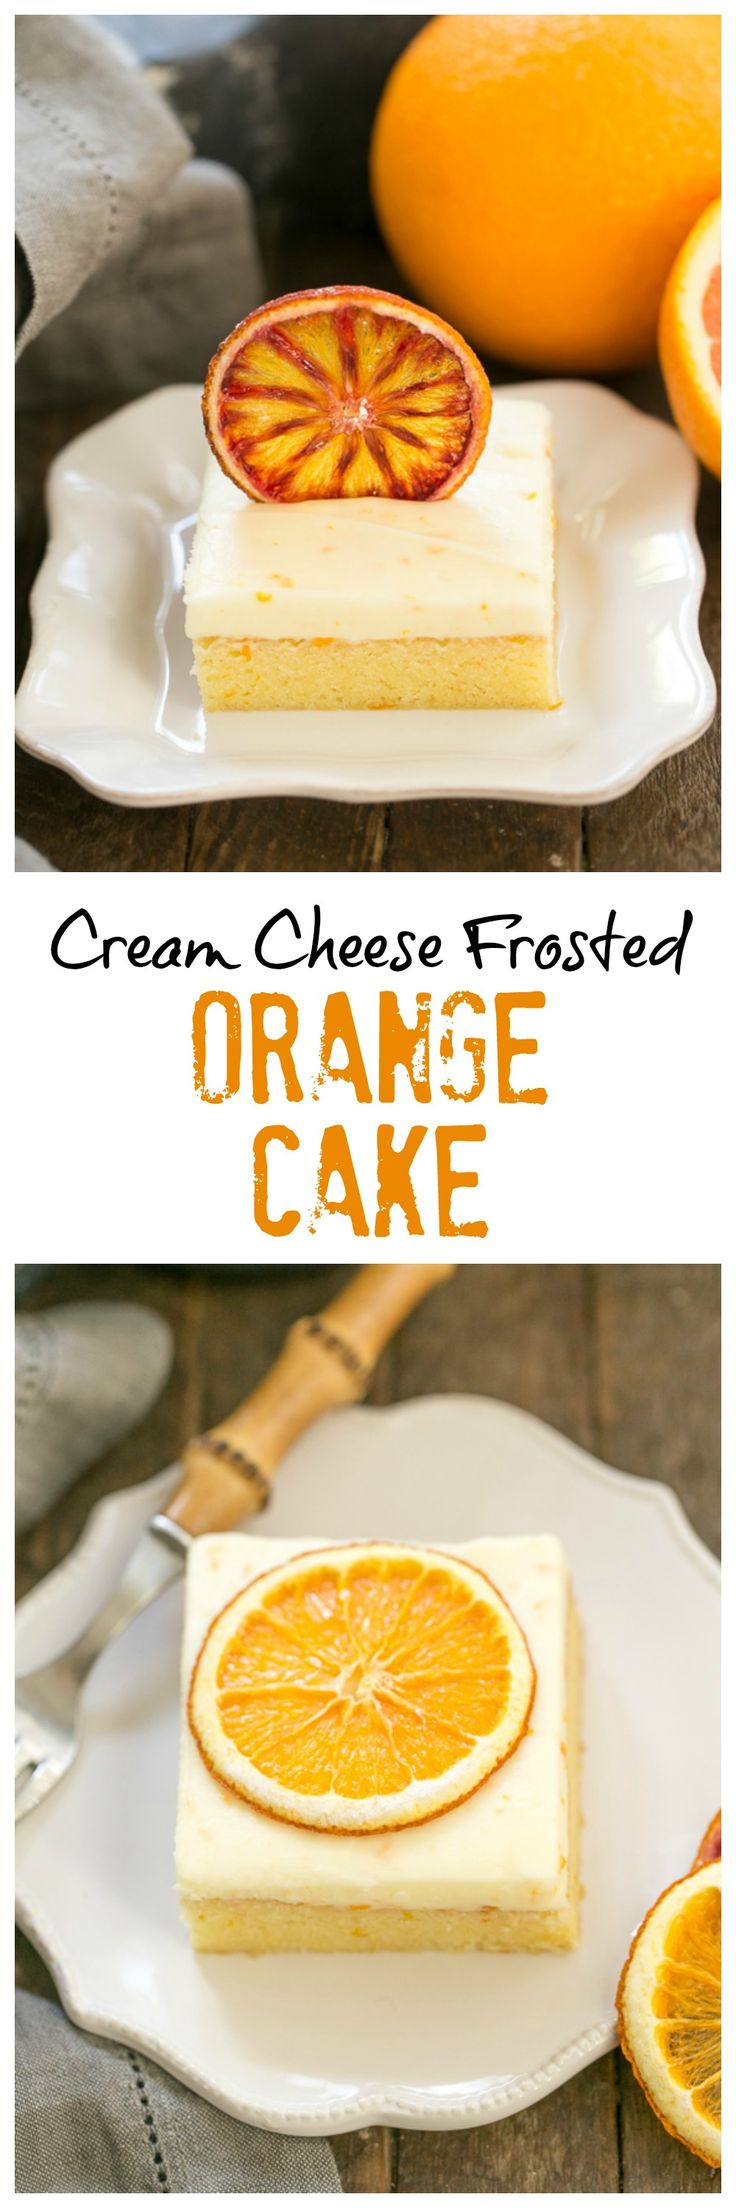 Orange Cake | An exquisite orange cake with cream cheese frosting @lizzydo